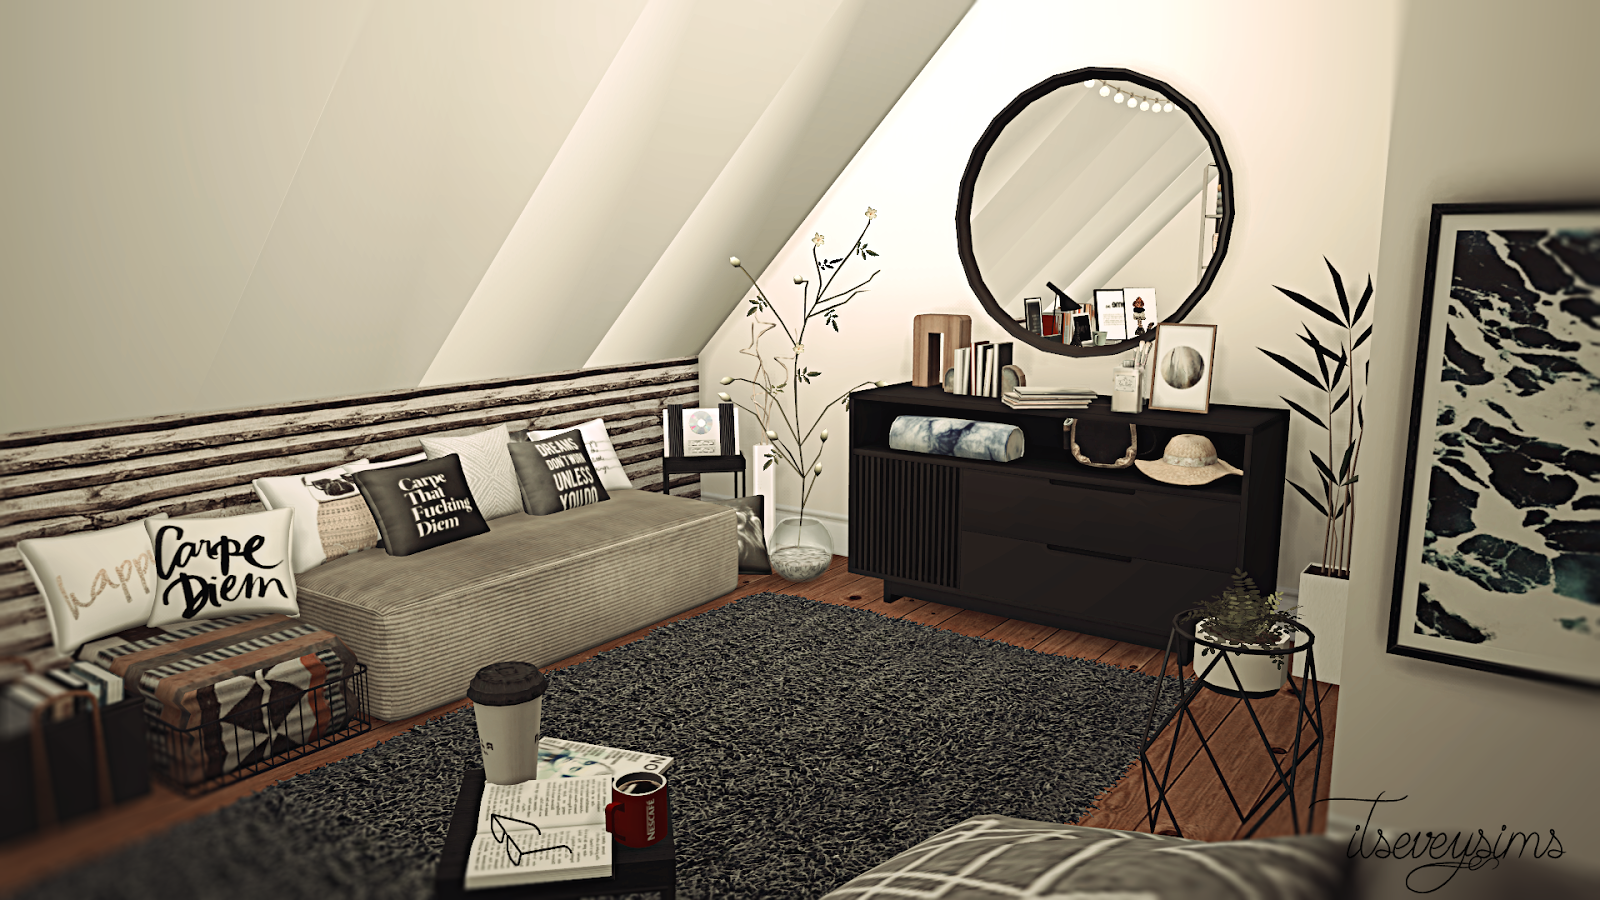 sims 4 rooms download tumblr